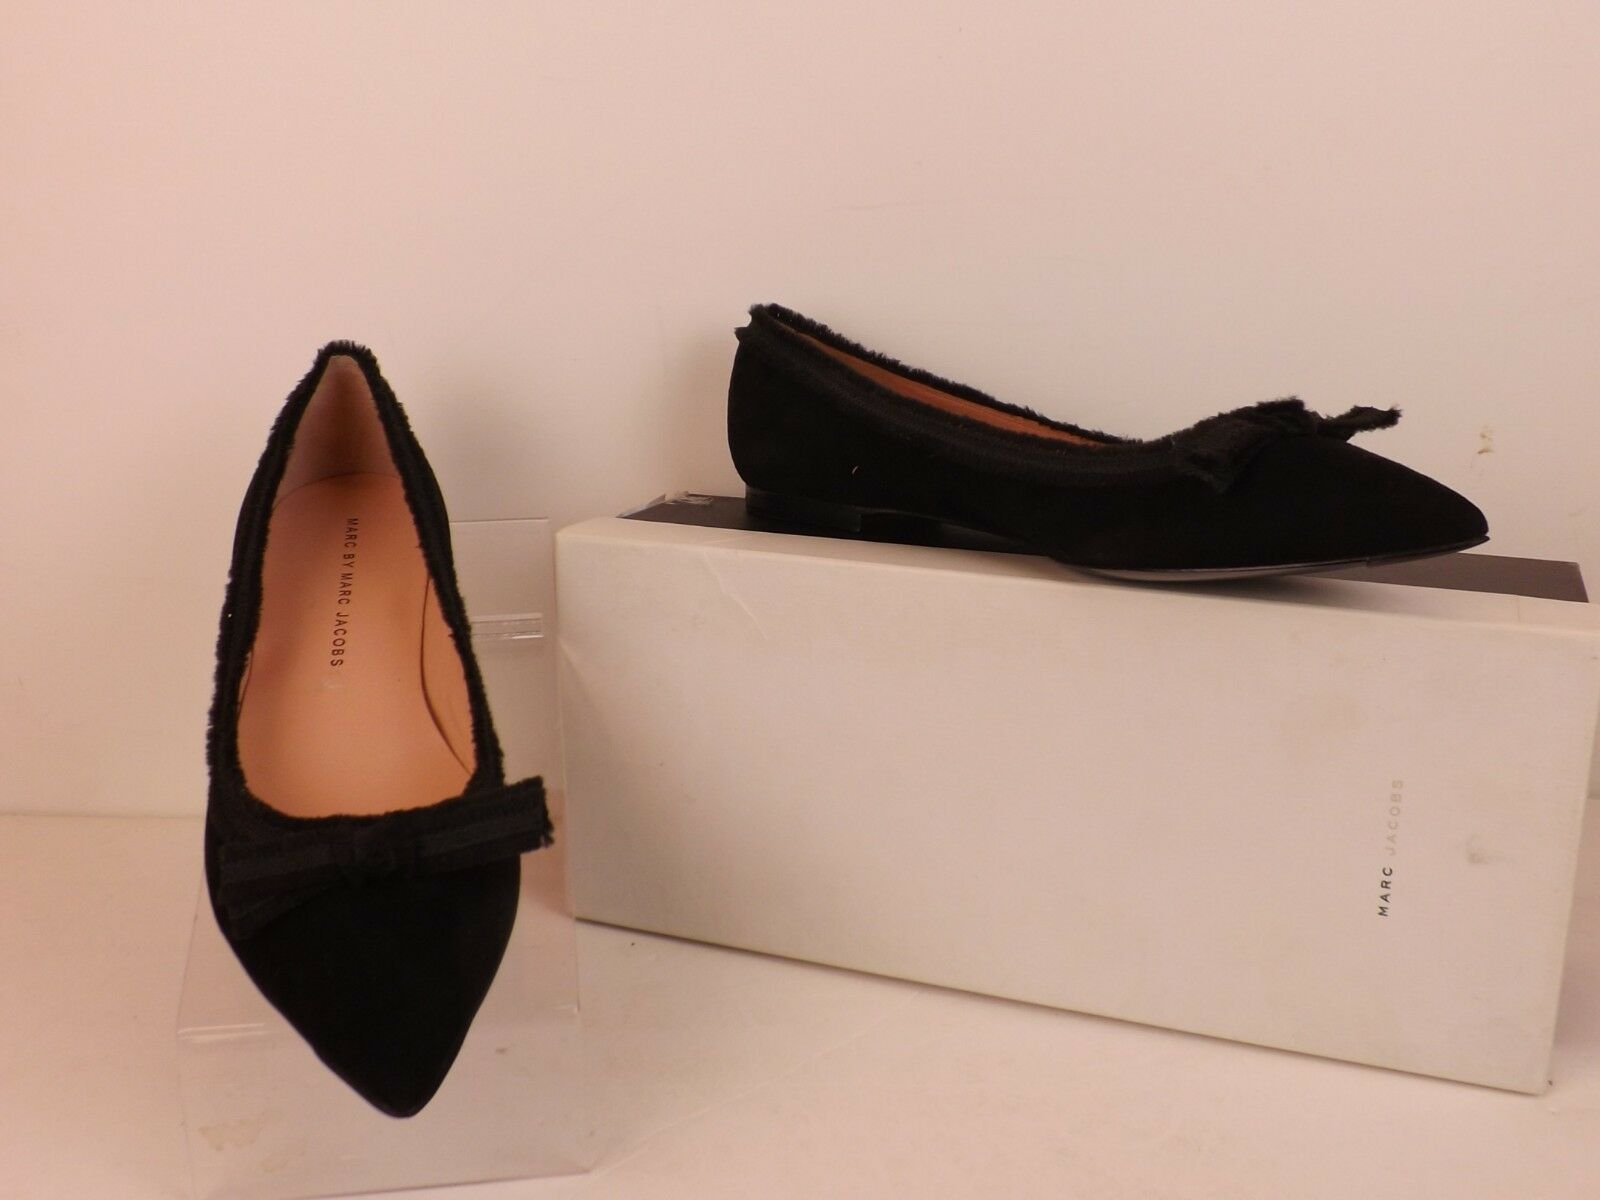 fa76529426da NEW NEW NEW MARC BY MARC JACOBS BLACK SUEDE POINTED TOE BOW BALLERINA FLAT  39 b2d423